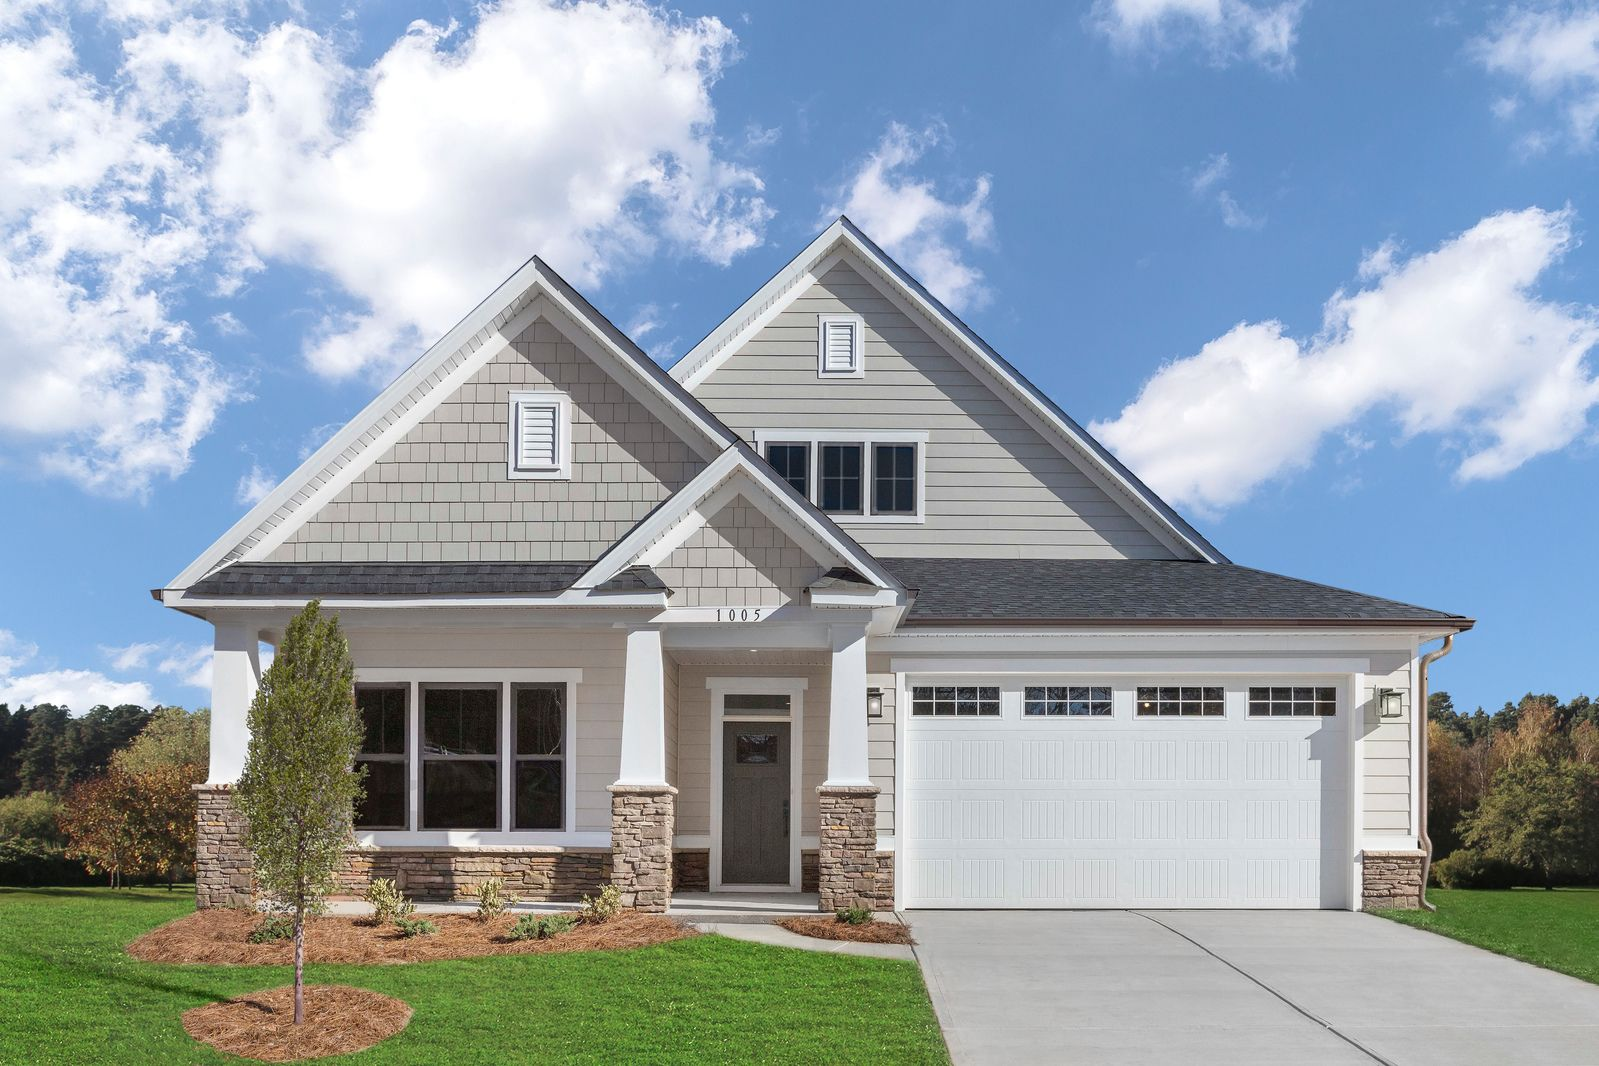 NOW SETTING VIP APPOINTMENTS! JOIN THE VIP LIST!:Introducing Glen Allen's premier 55+ community featuring first floor level living & no yard work from the upper $300s! Live better, make friends & laugh more.Join the VIPsto set your appointment!